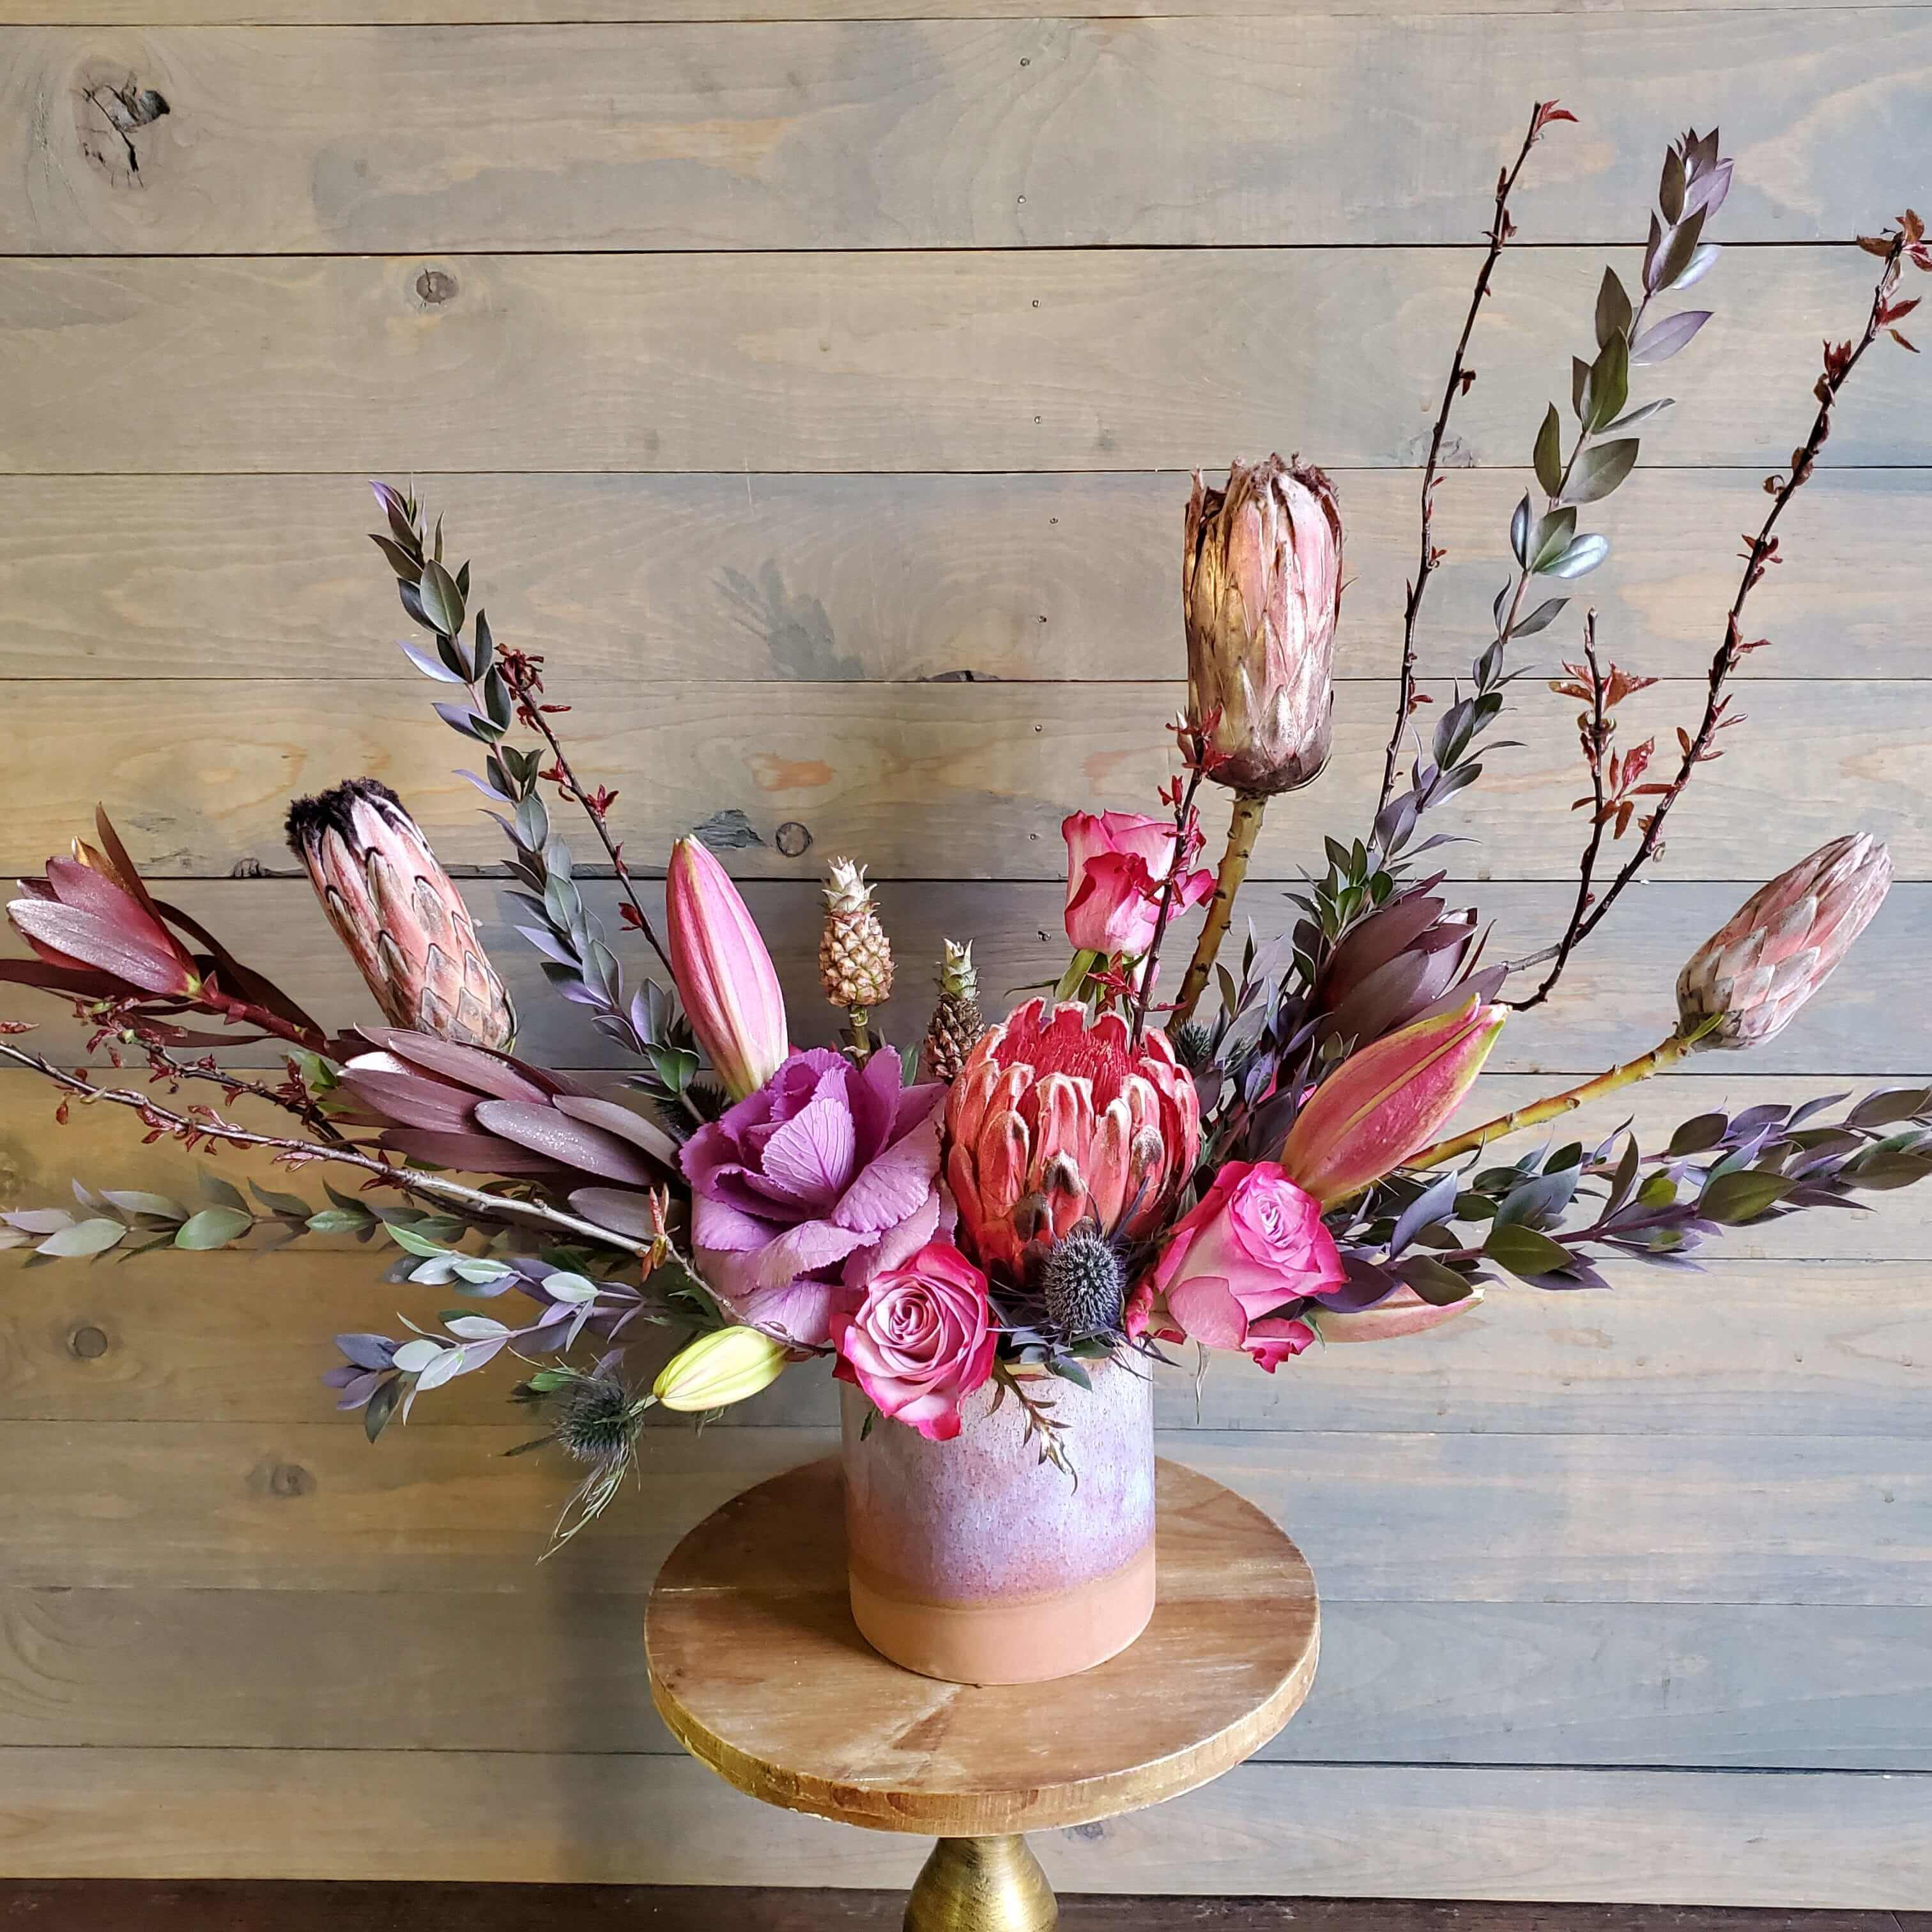 Naturalistic floral design in pink